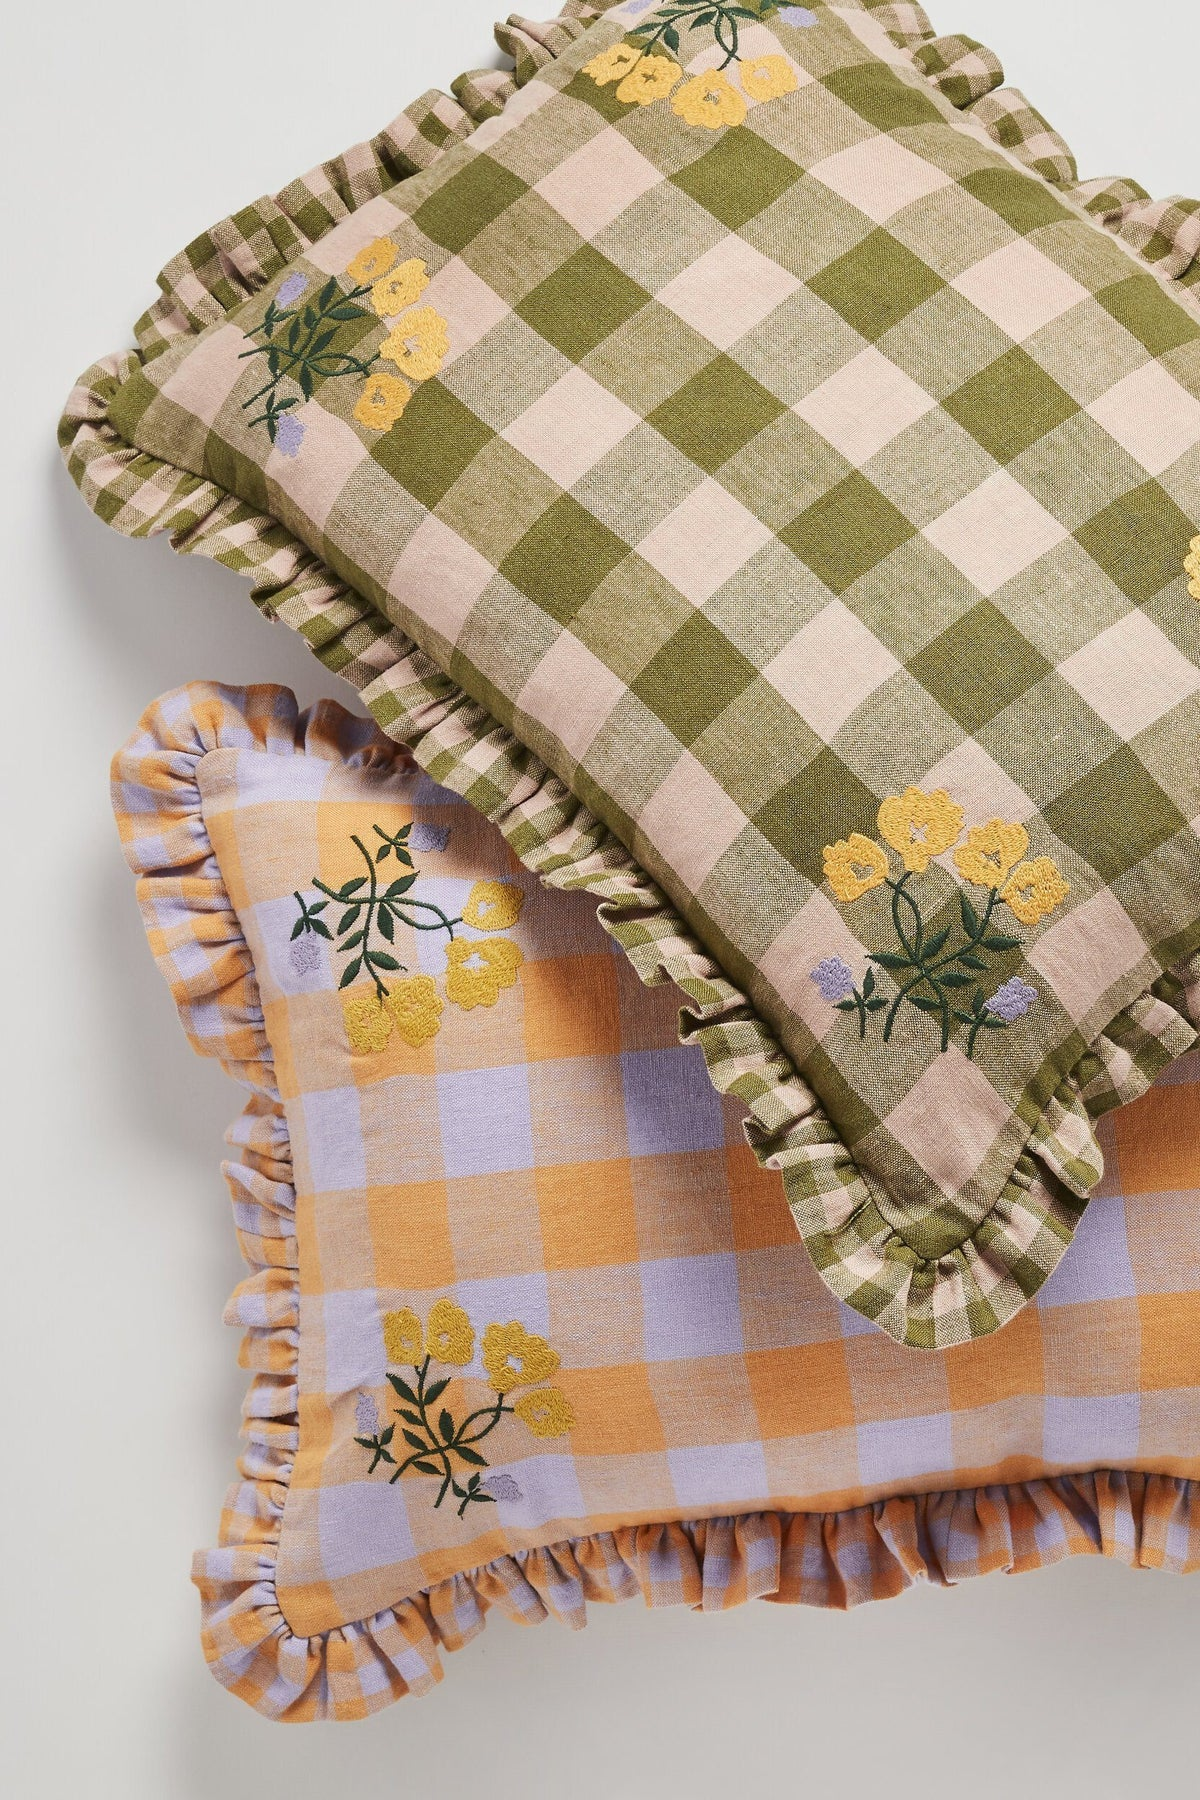 Gingham and Embroidery Cushion - Olive Soft Furnishings Projekti Tynny